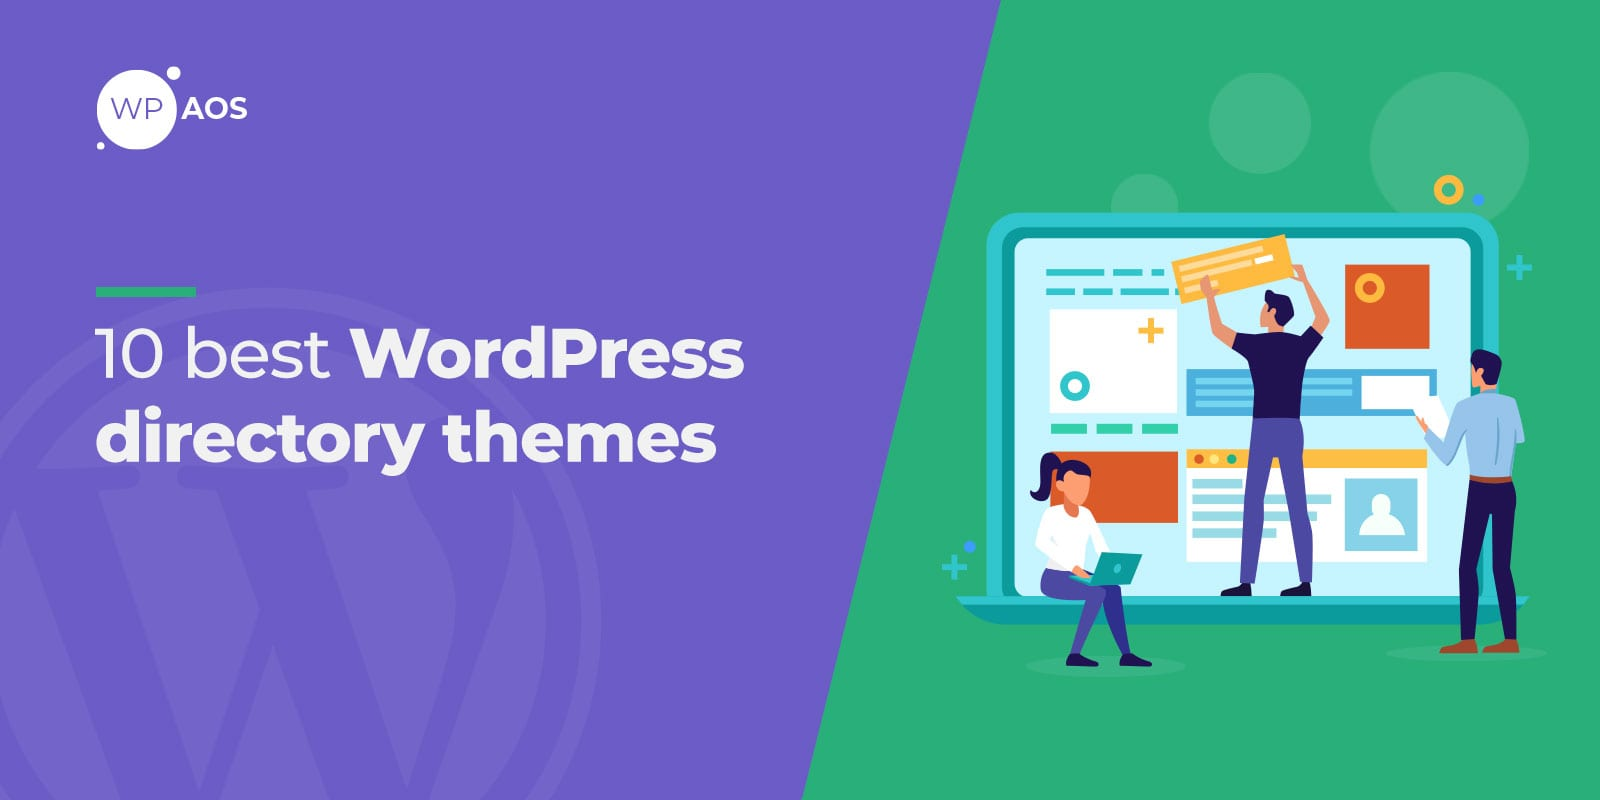 wordpress themes, directories, listing sites, wpaos